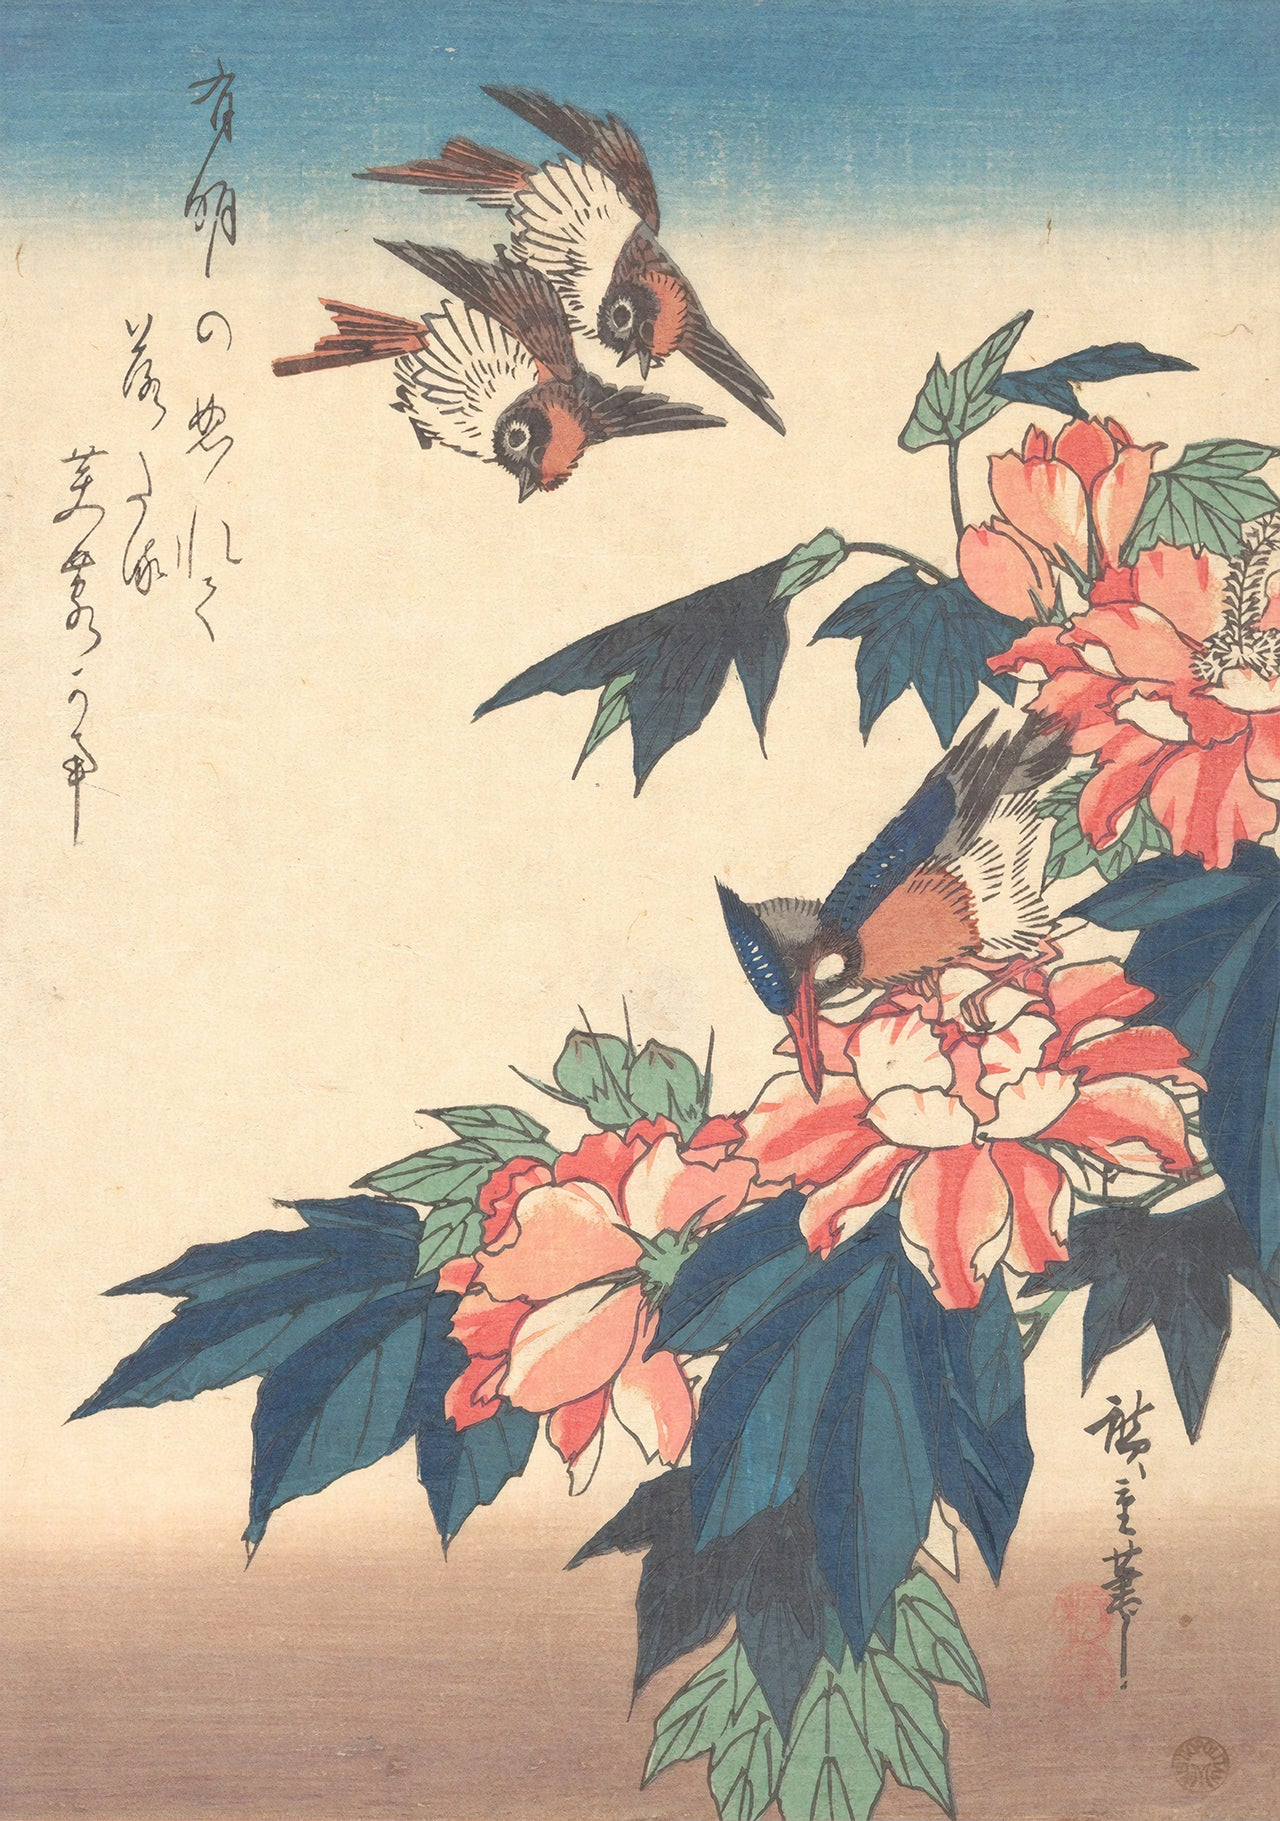 Swallows and Kingfisher with Rose Mallows (1838) by Hiroshige